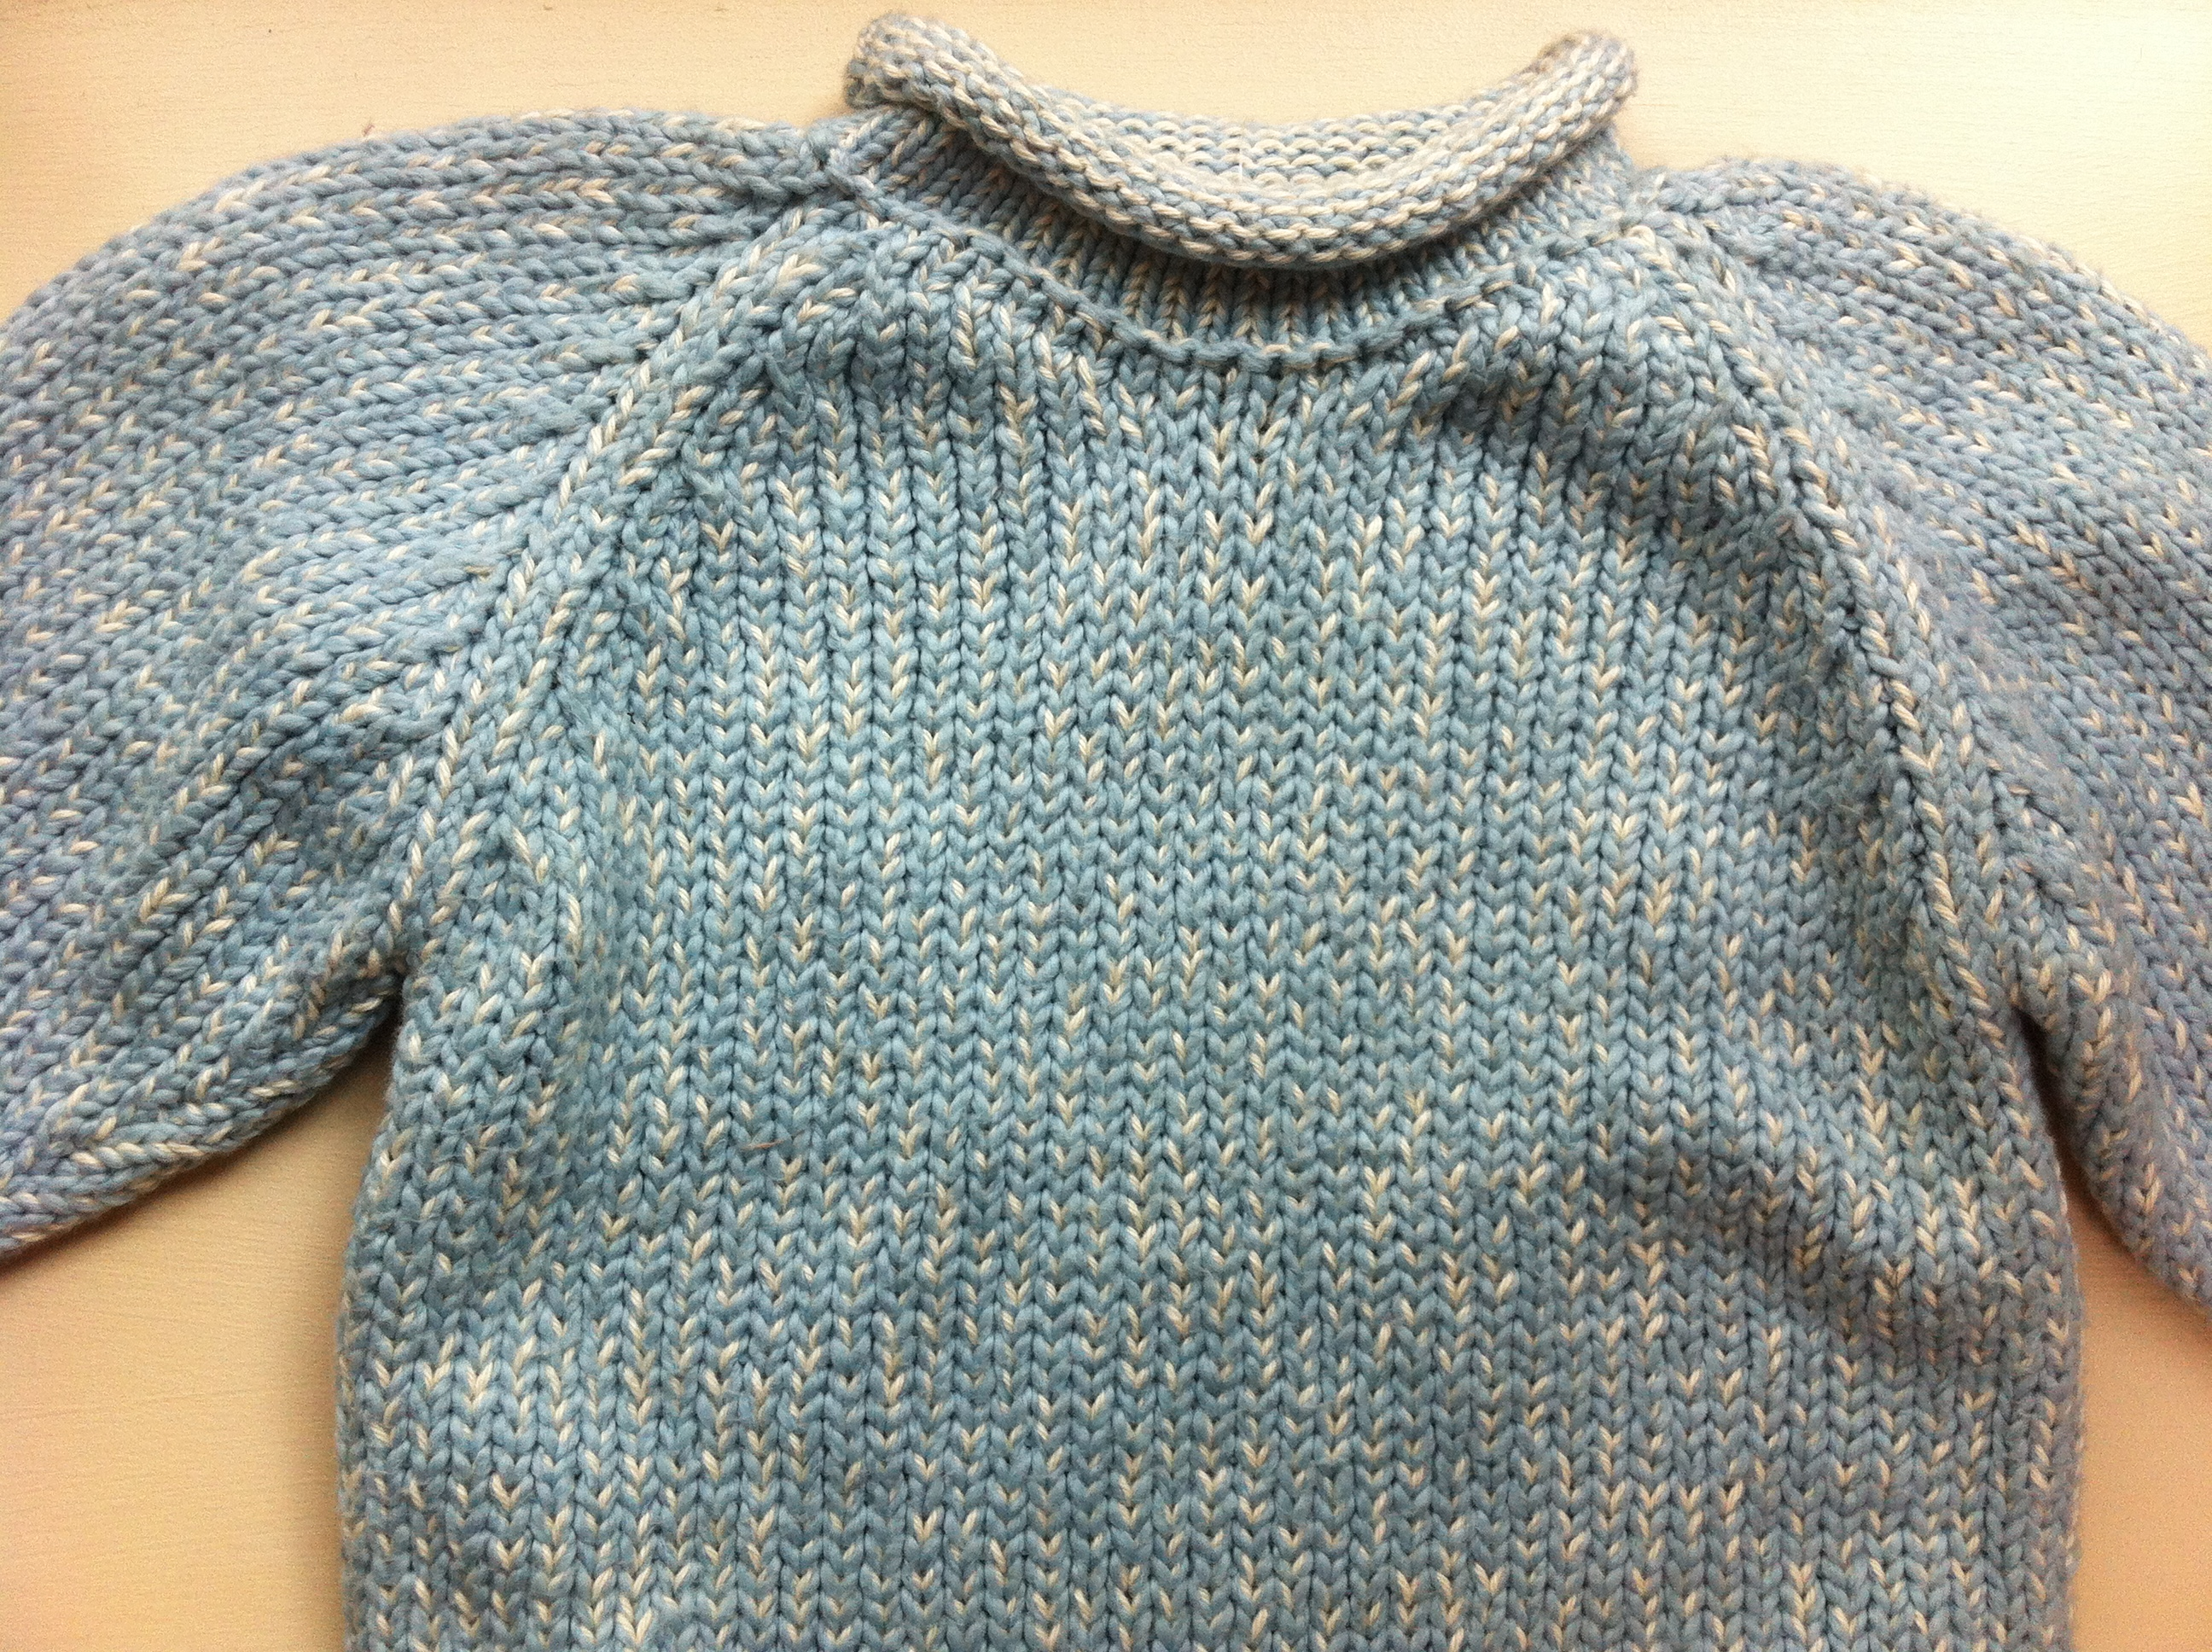 Knit Sweater W/ Mock Turtleneck